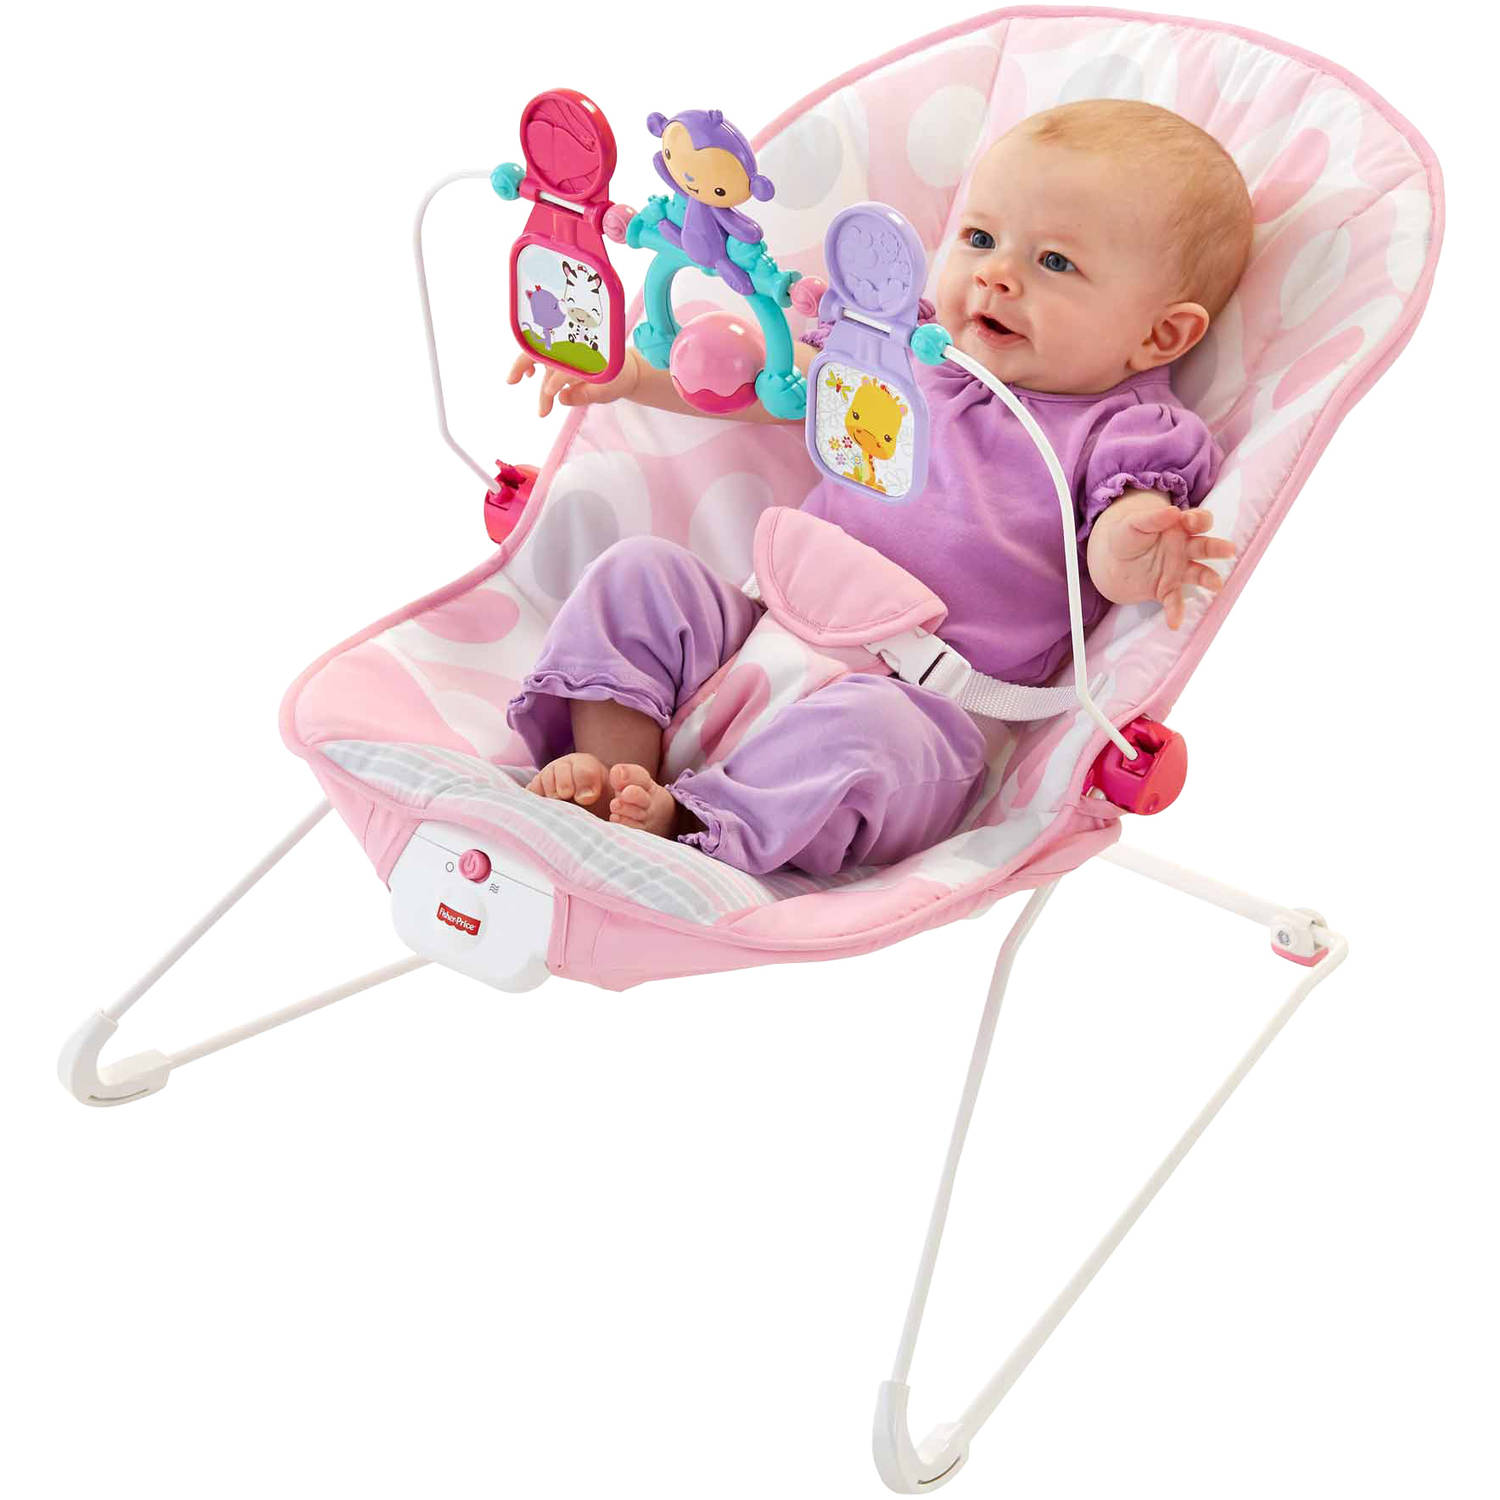 Fisher-Price Baby\'s Bouncer, Pink Ellipse - Walmart.com